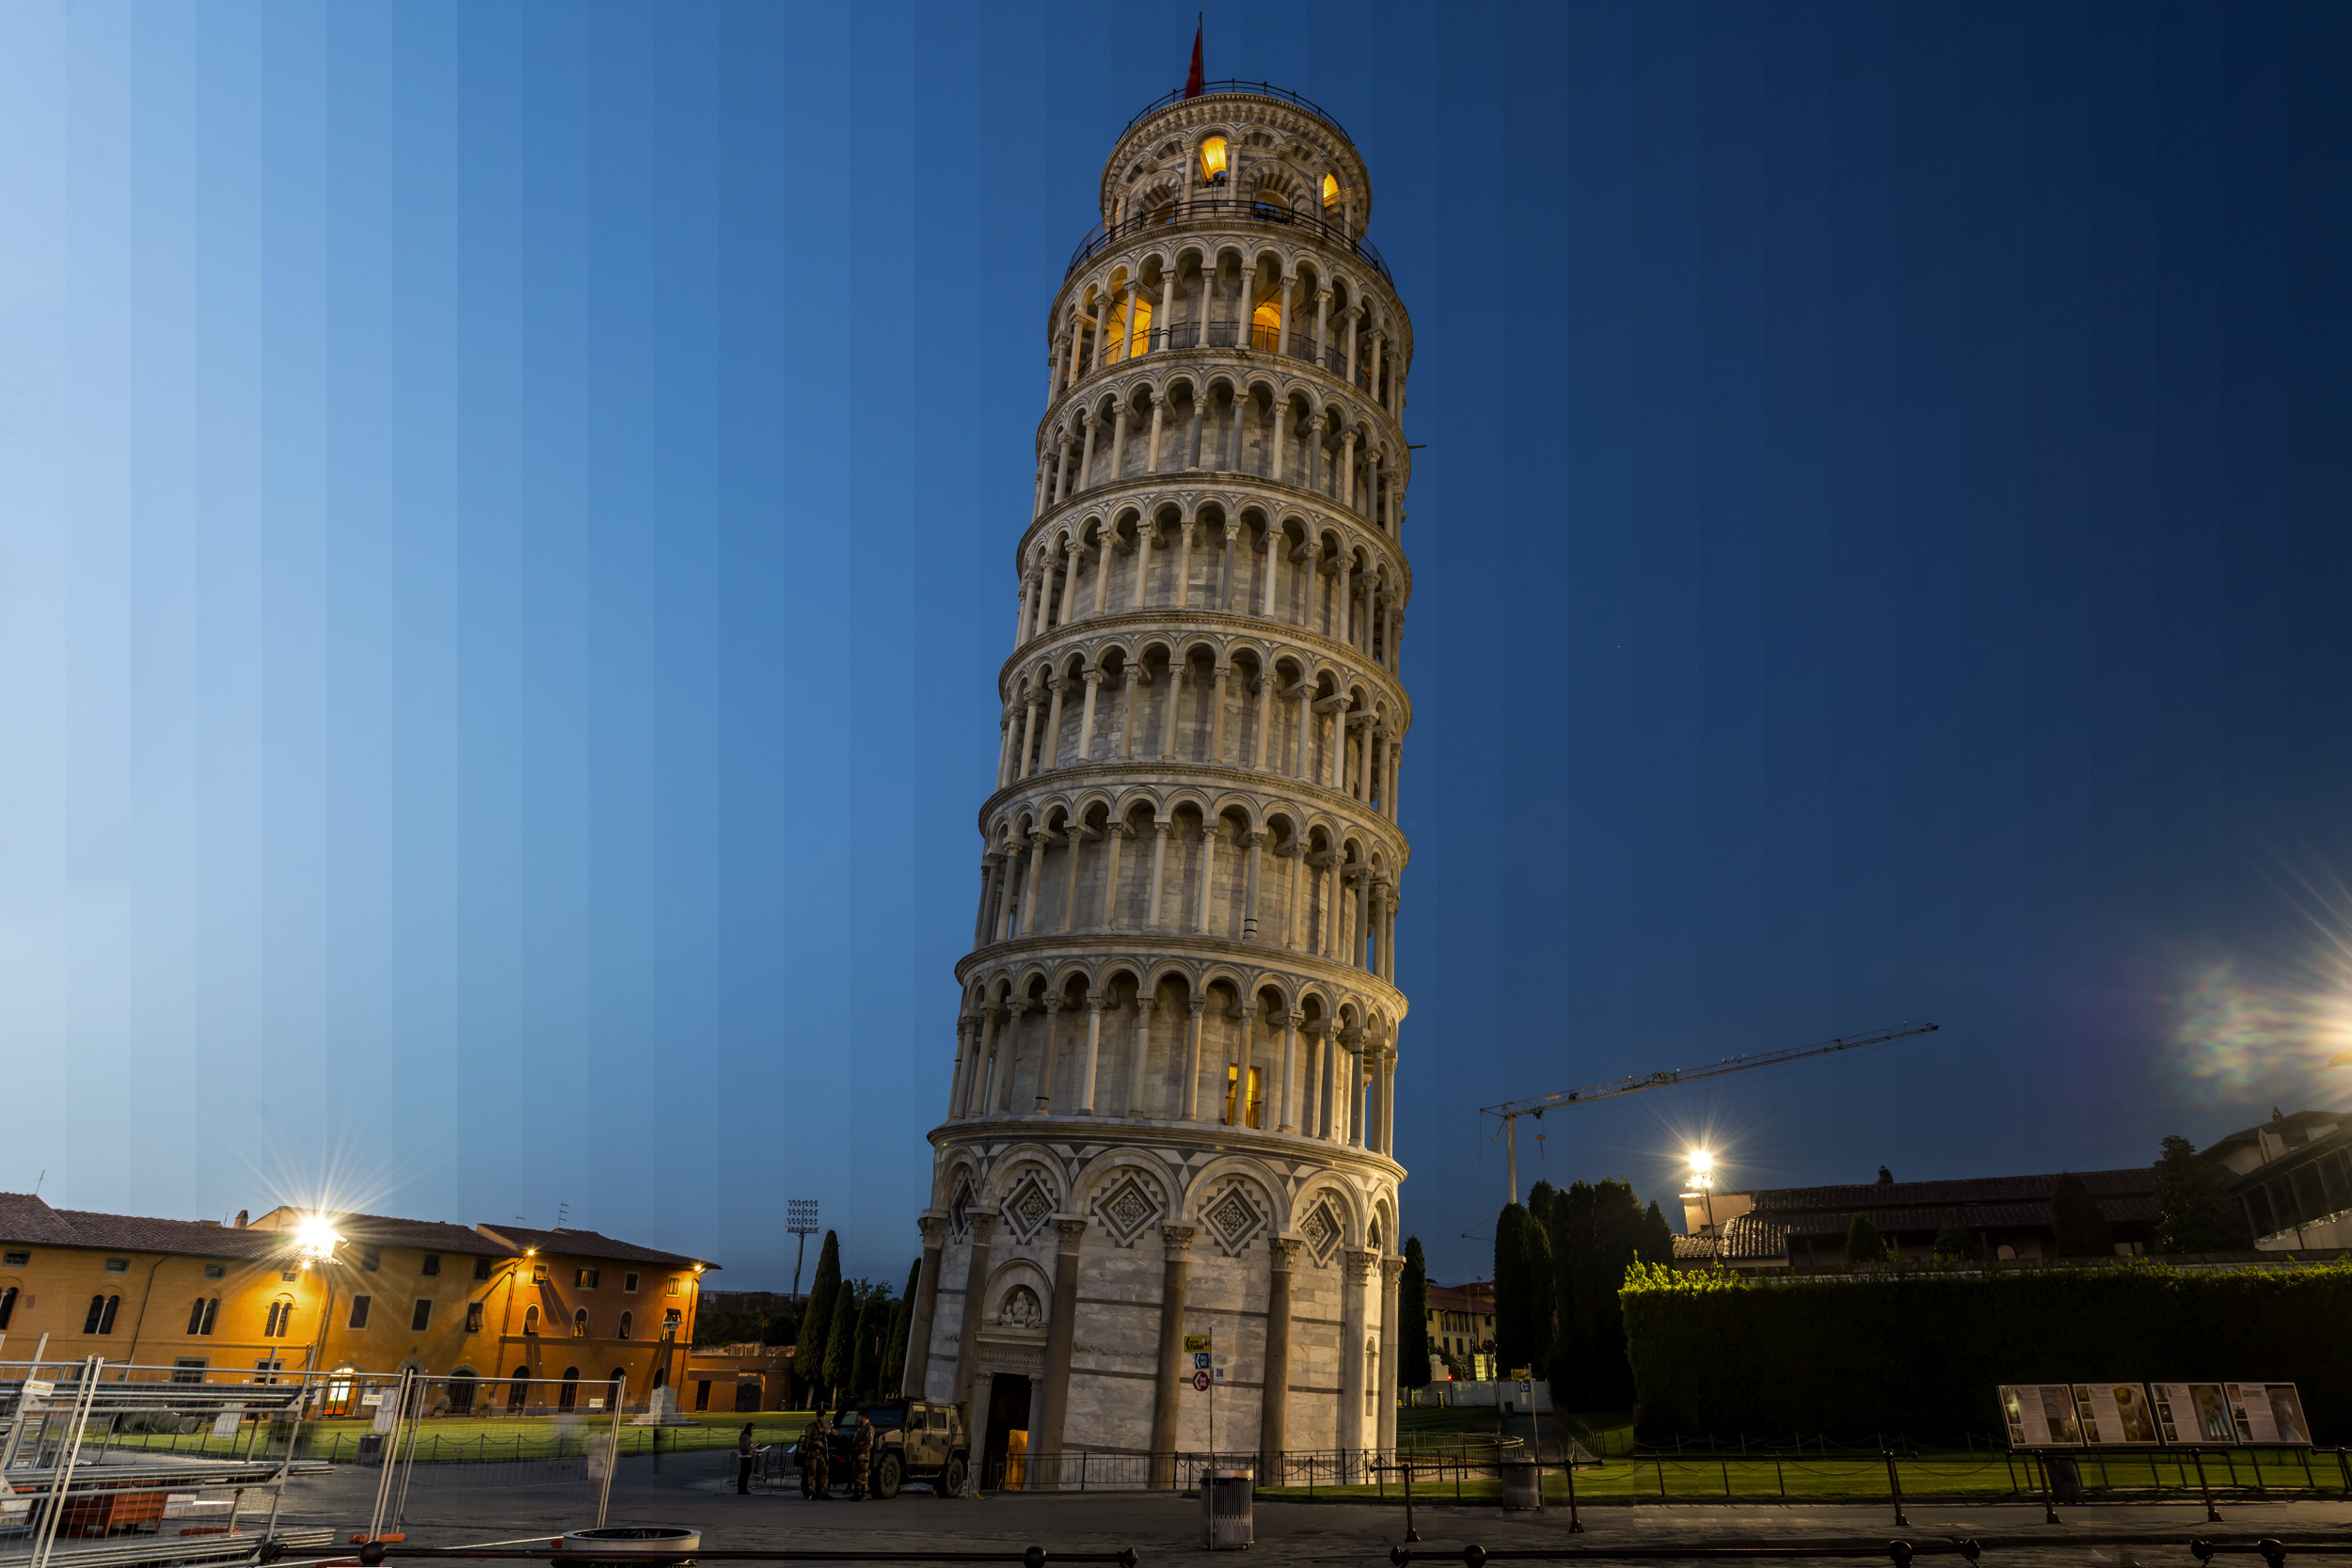 Leaning Tower of Pisa, Pisa, Italy